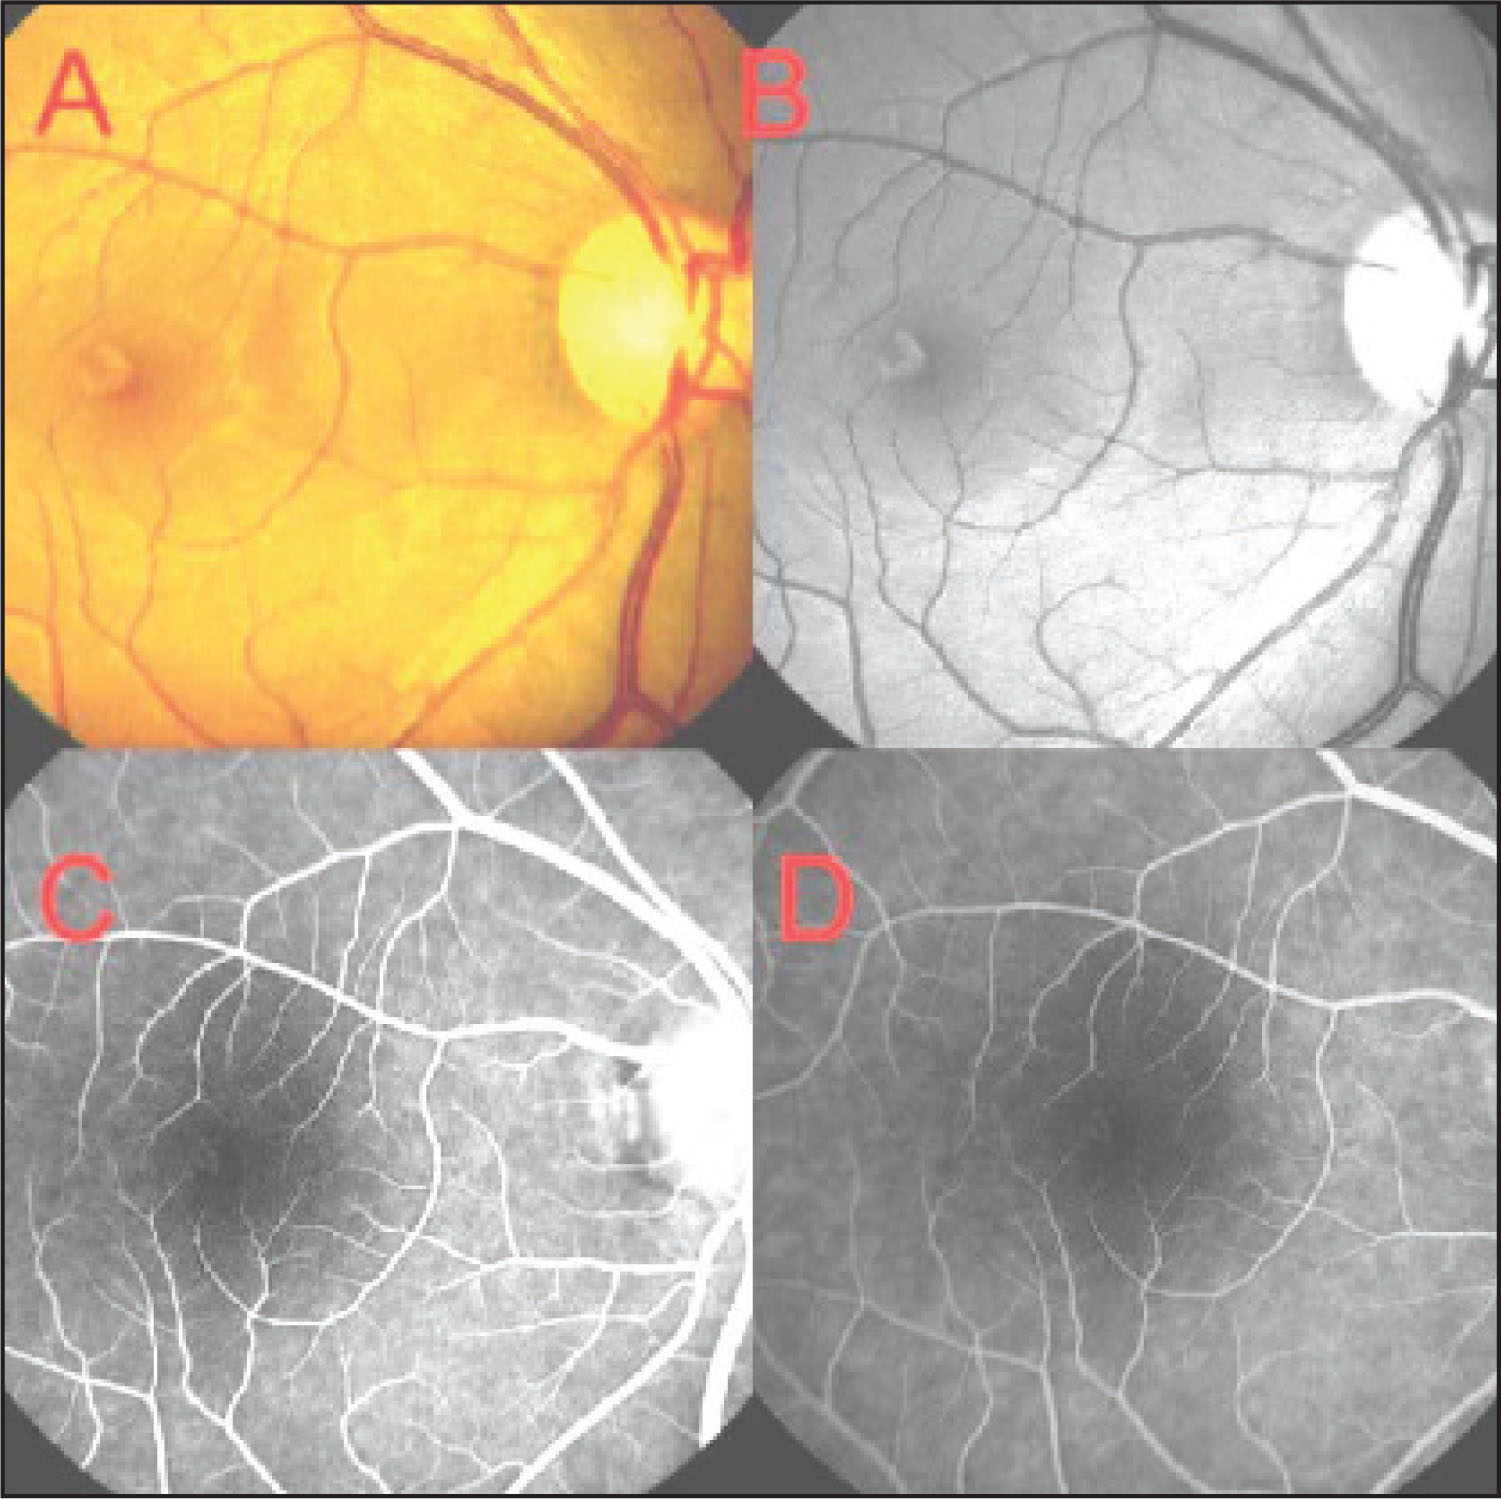 (A, B) Fundus Examination Revealed a Grayish White Spot Close to Fovea in the Right Eye. (C, D) Fluorescein Angiography of the Right Eye Demonstrated a Mild Early Transmission Defect in the Foveal Region Without Late Staining.